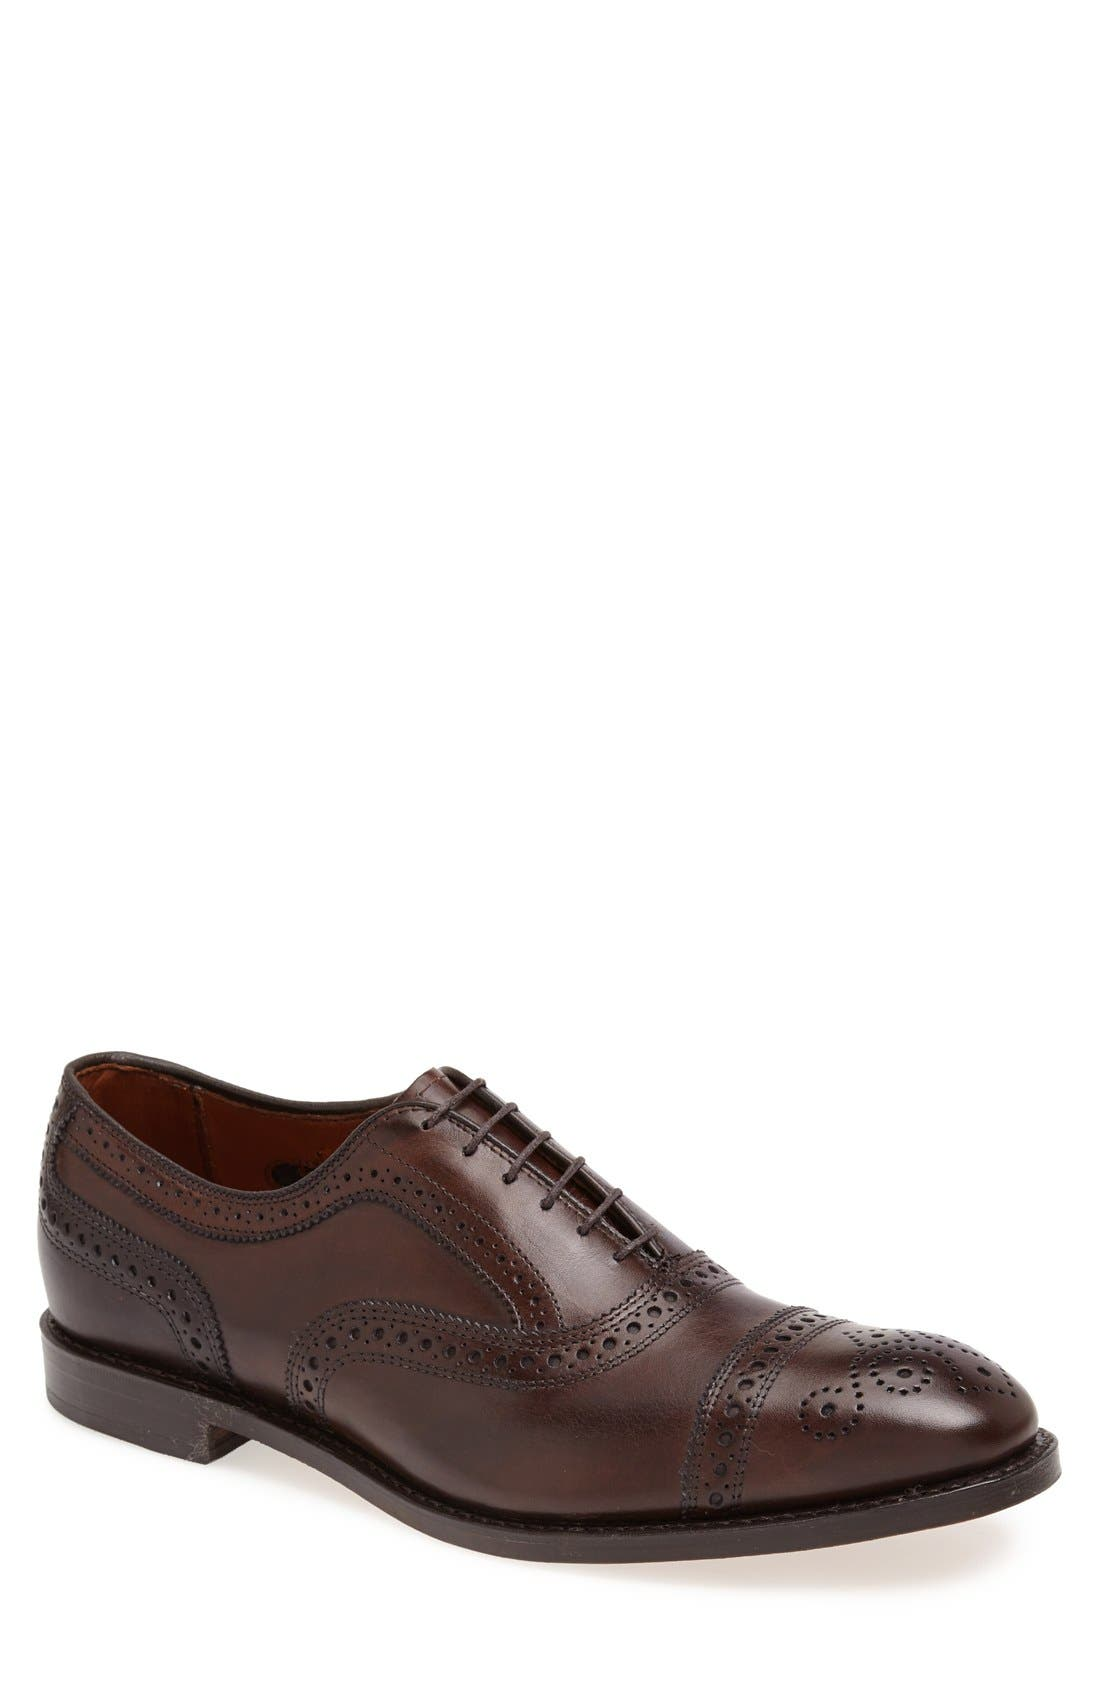 'Strand' Cap Toe Oxford,                         Main,                         color, BROWN BURNISHED CALF